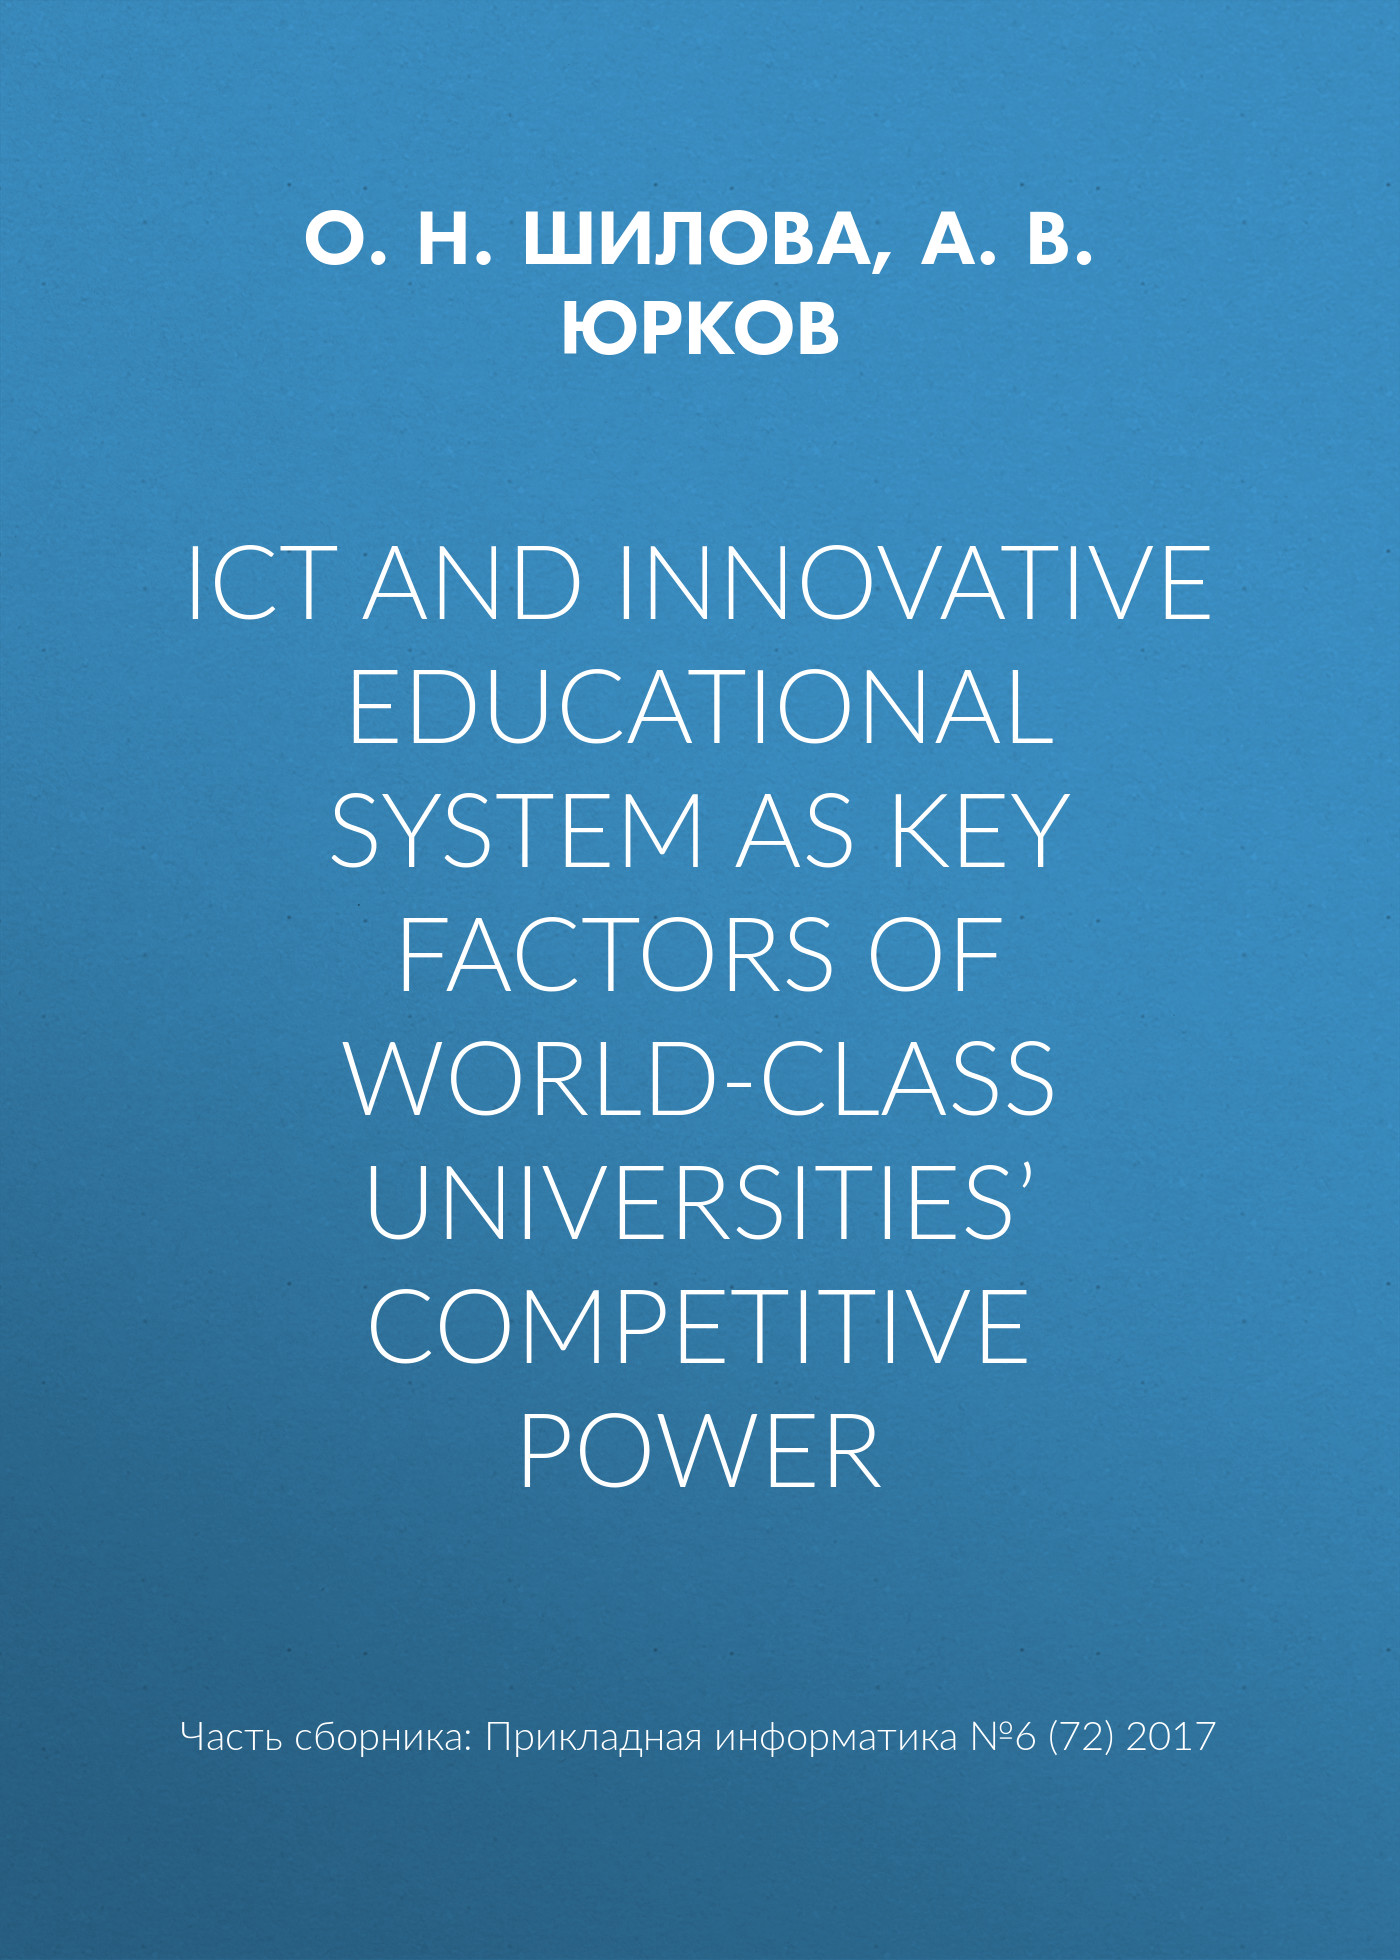 А. В. Юрков ICT and innovative educational system as key factors of world-class universities' competitive power personal epistemology as predictor of attitudes toward ict usage